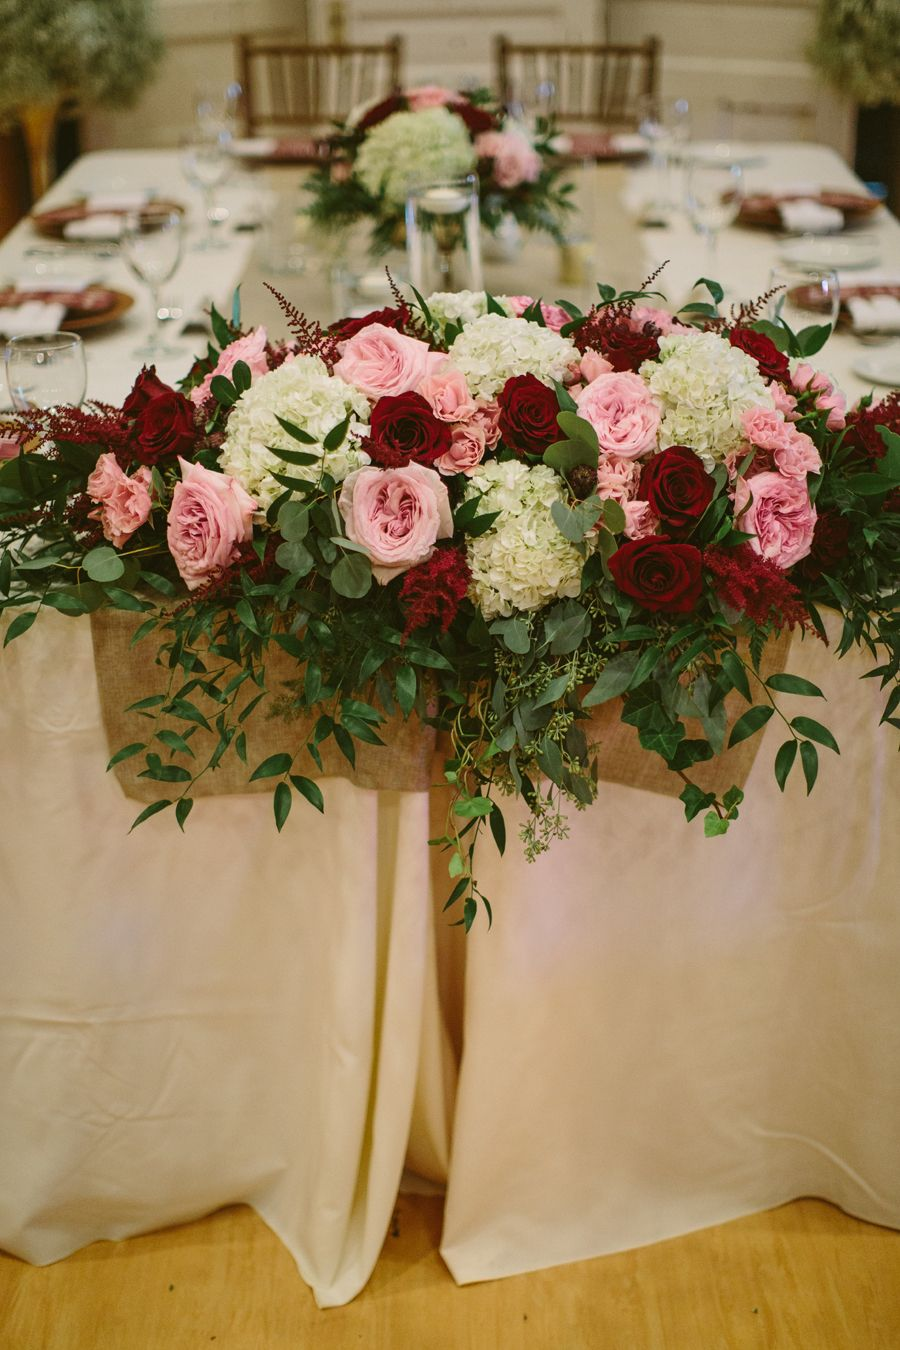 Head Table Floral Arrangement to include Pink O'Hara